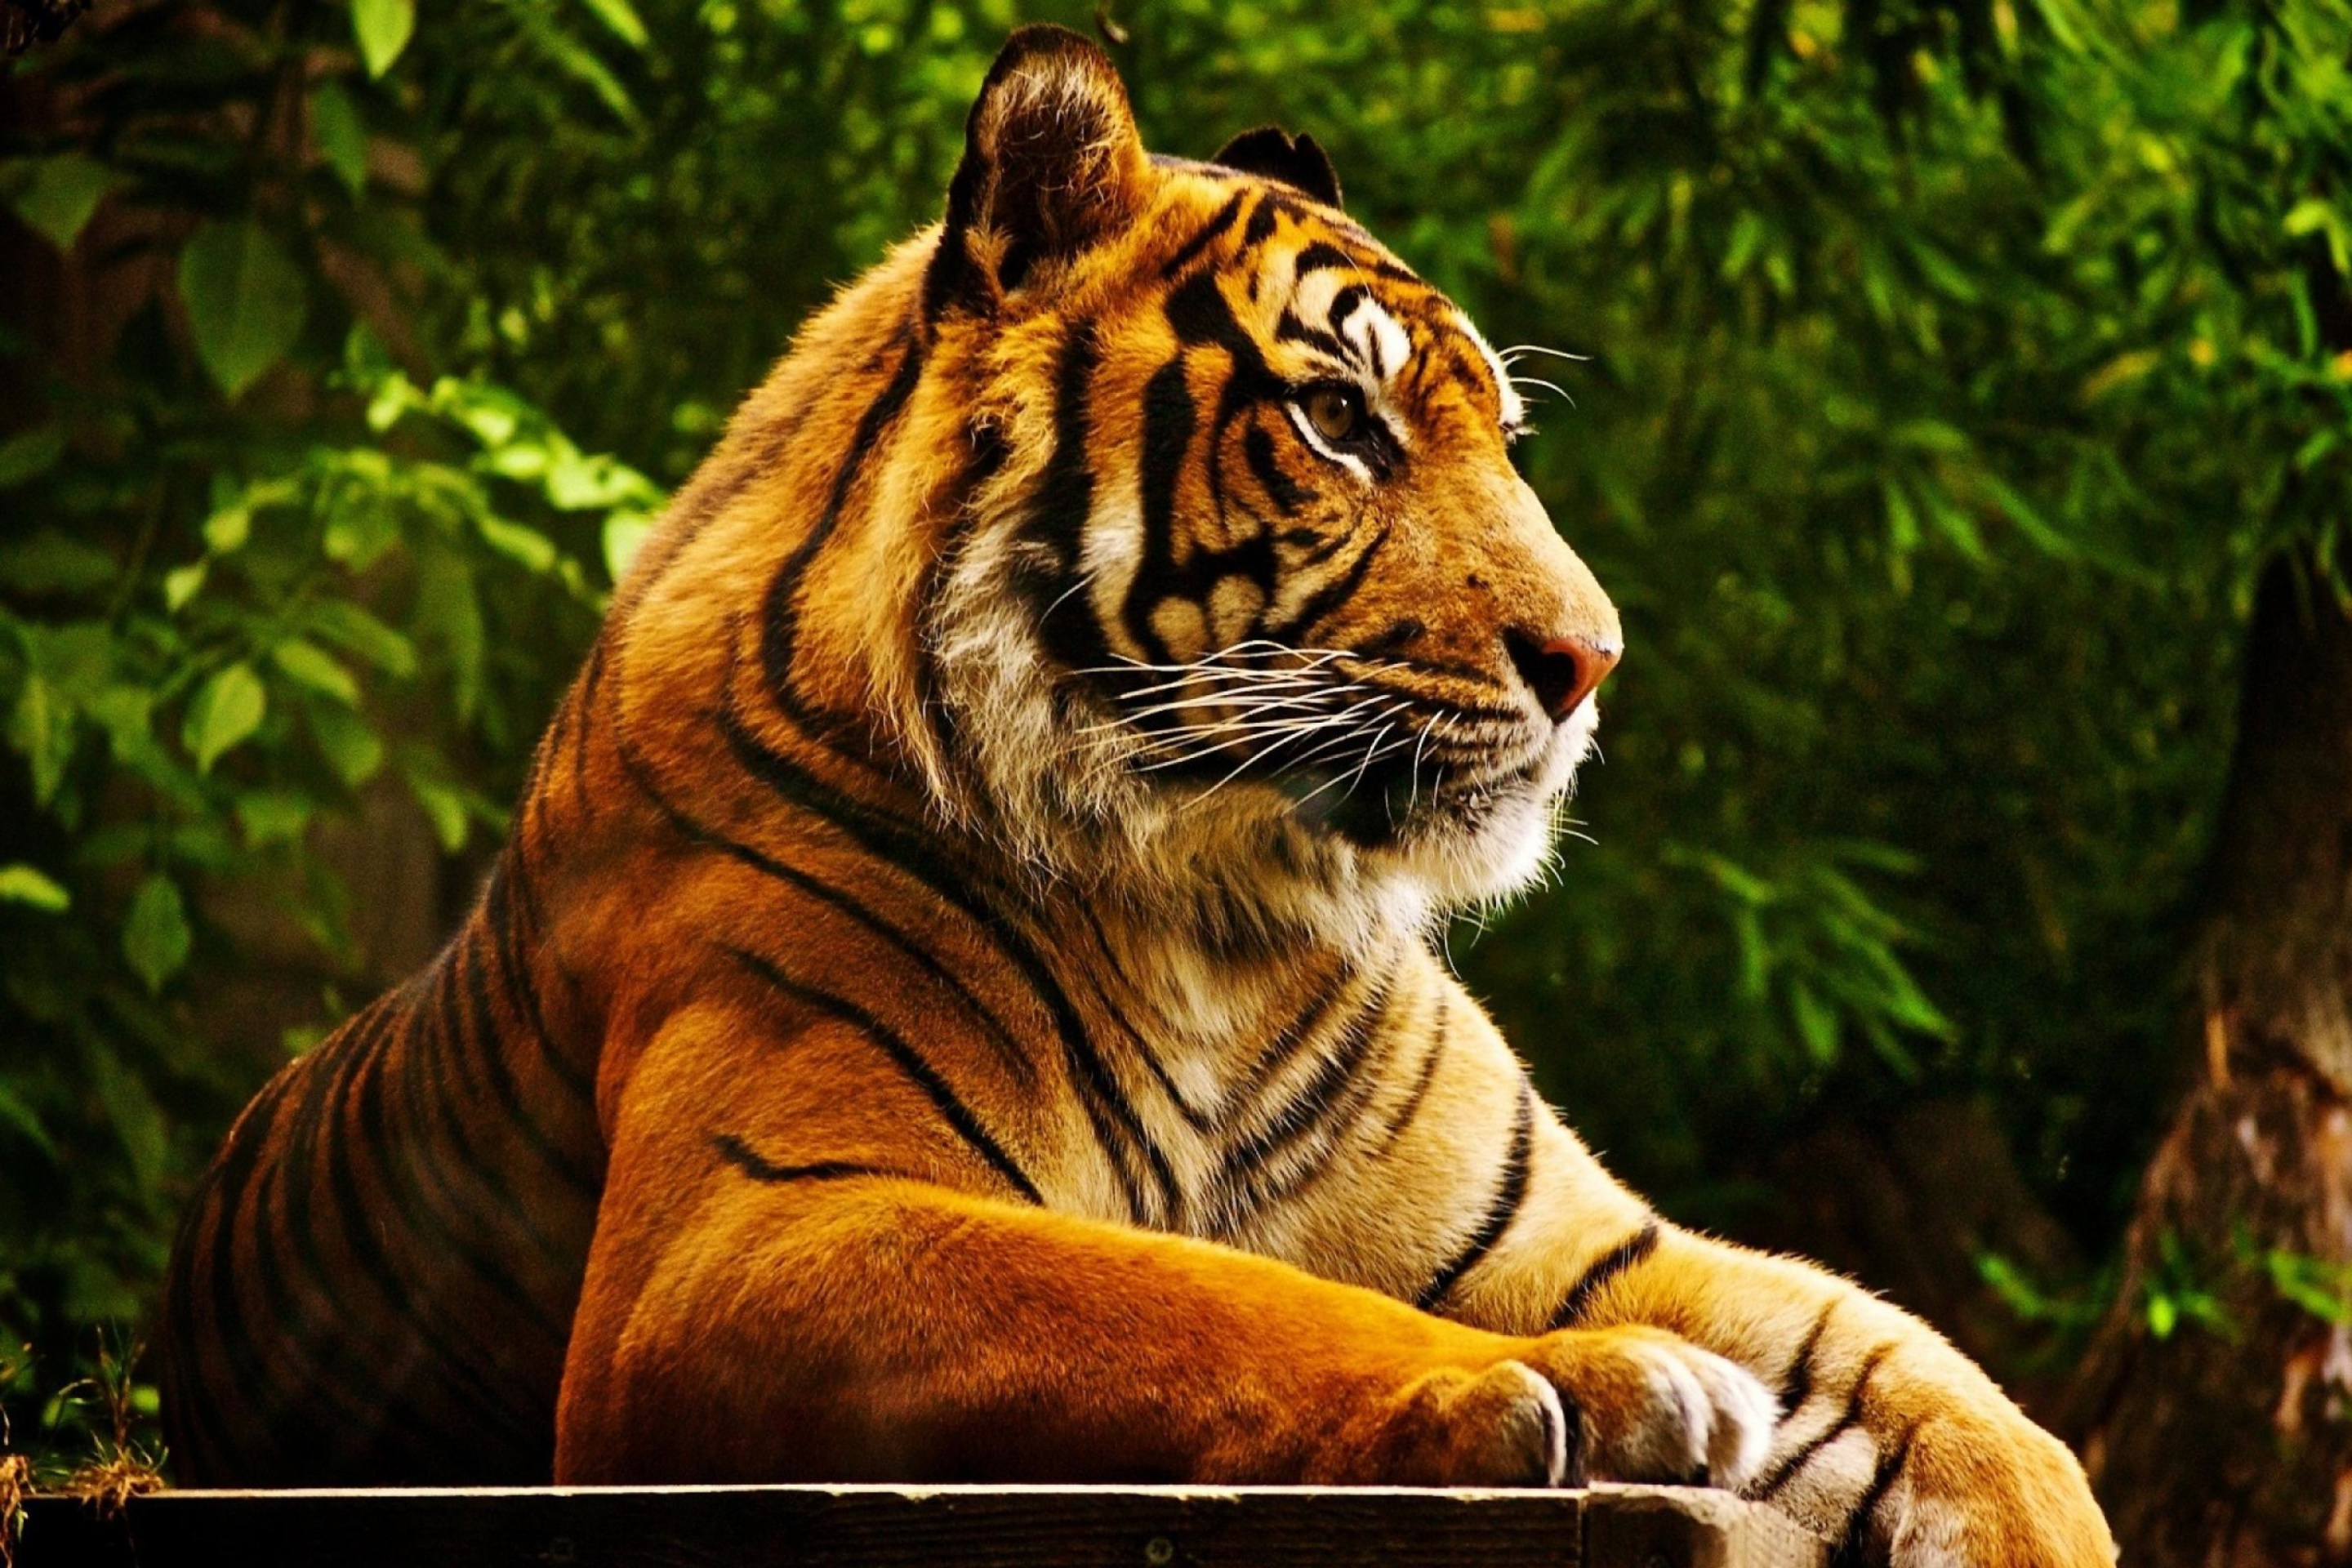 Royal Bengal Tiger screenshot #1 2880x1920